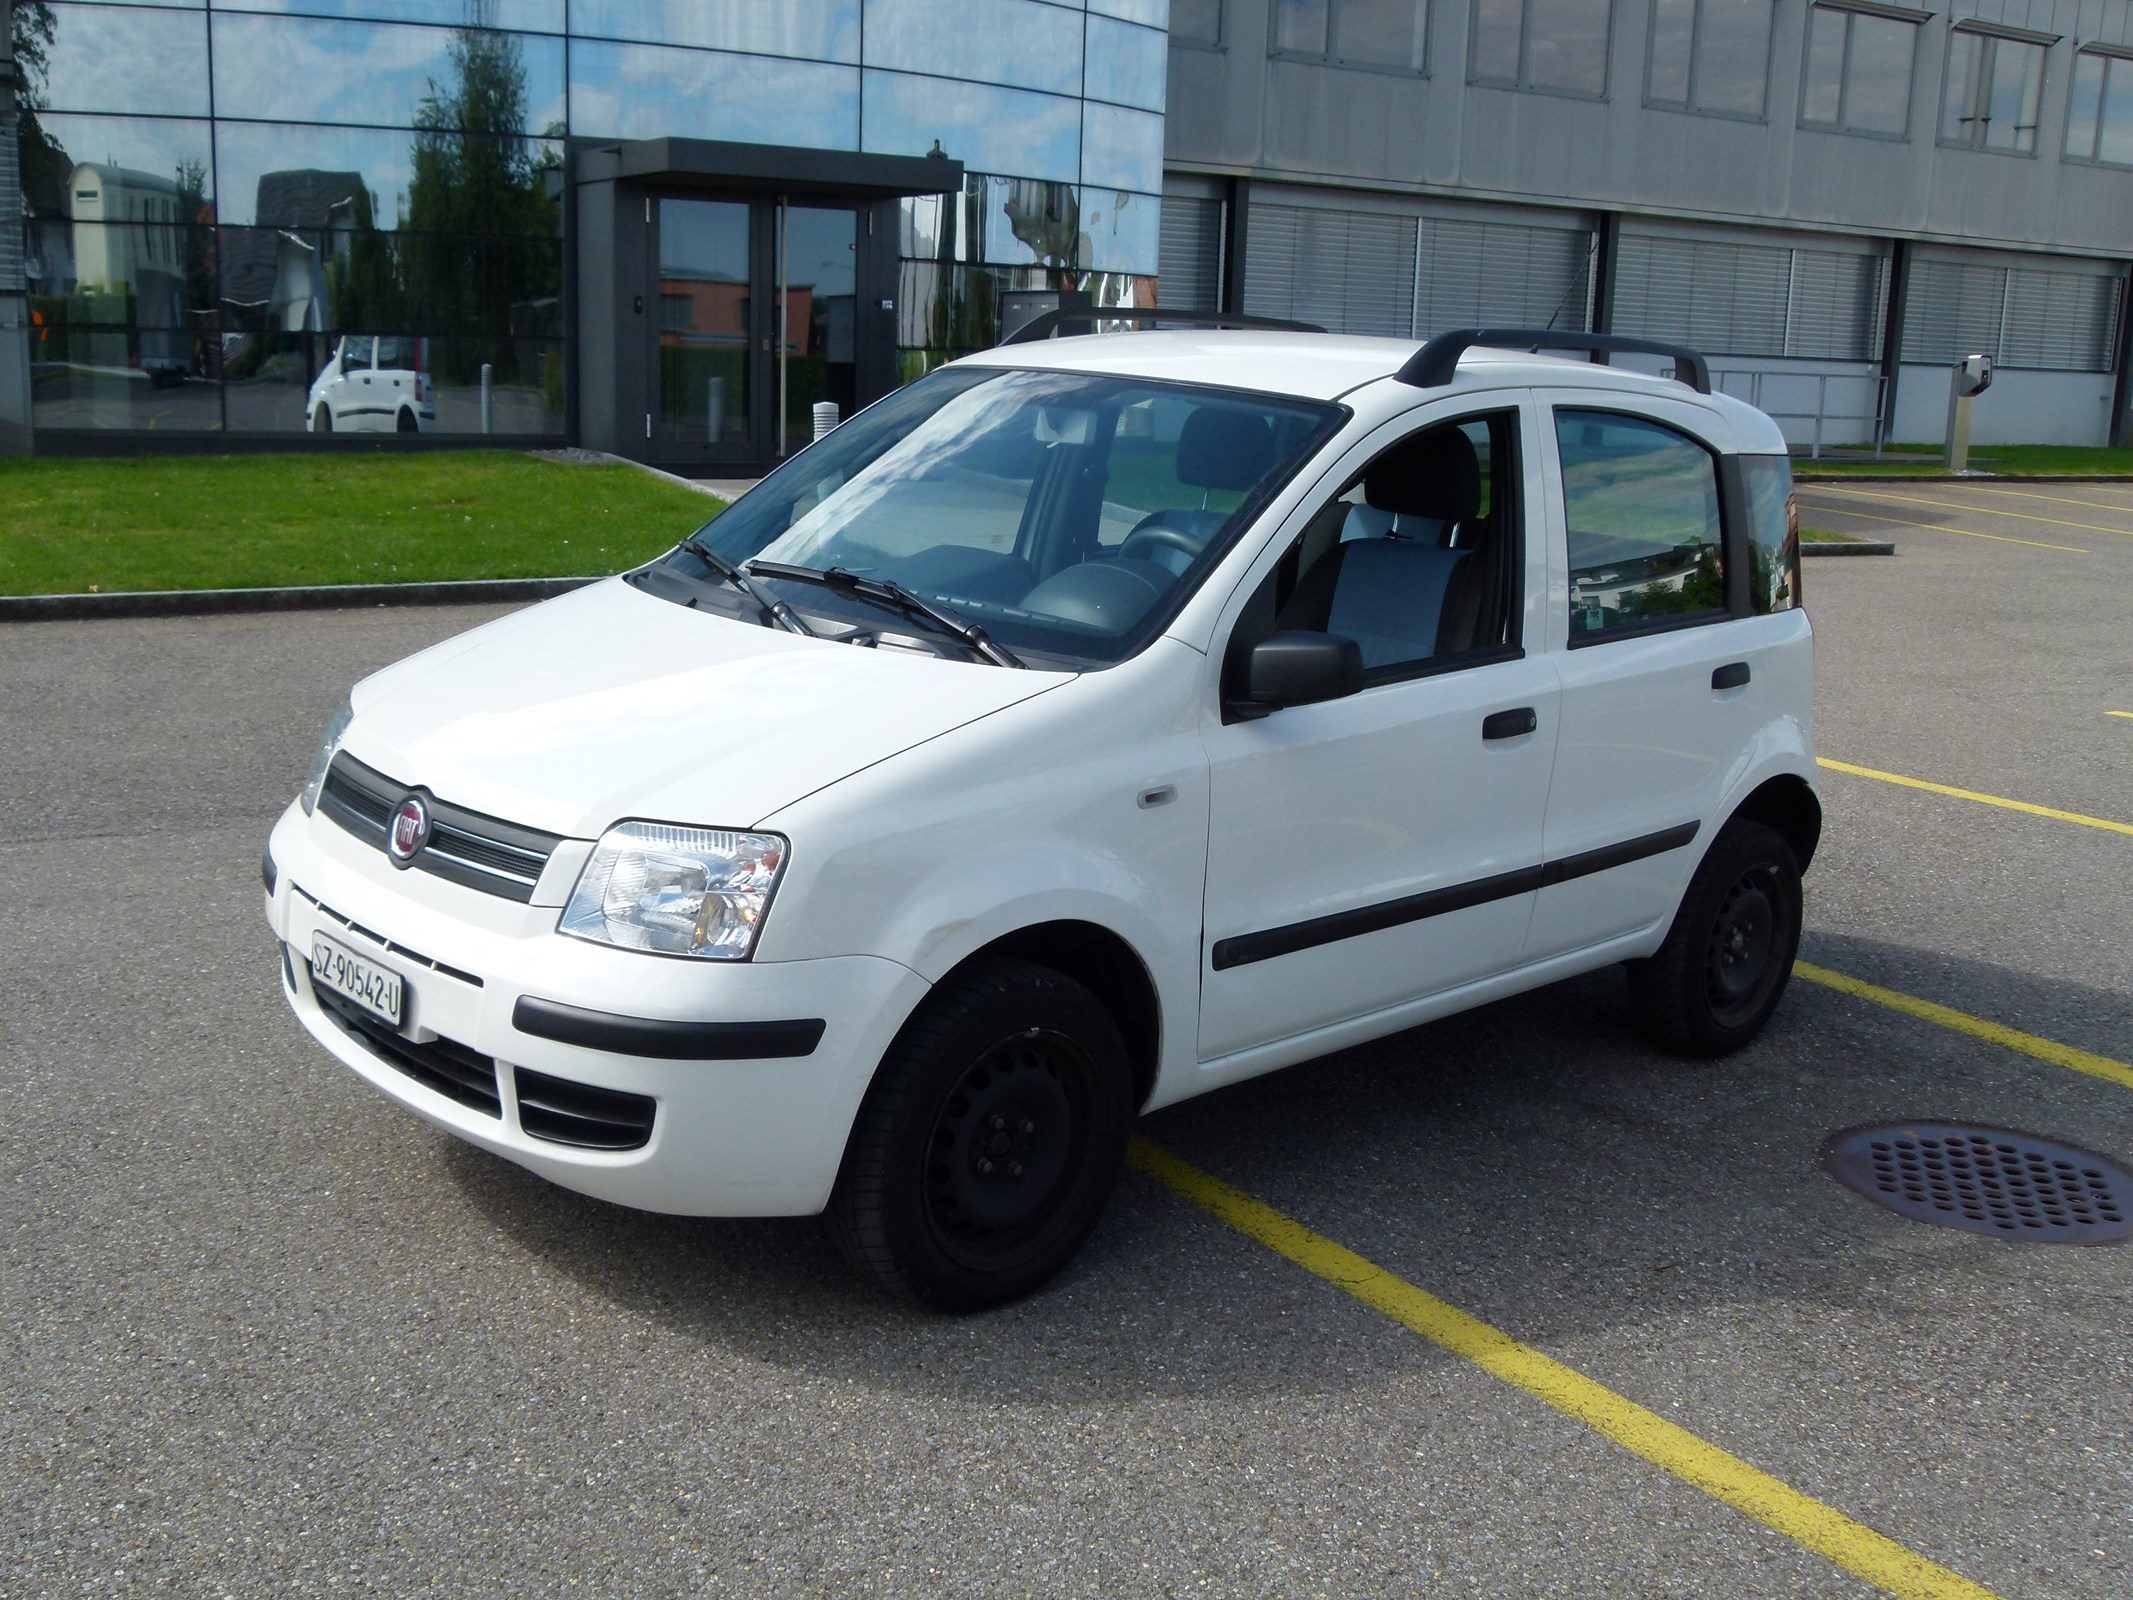 saloon Fiat Panda 1.2 Natural Power